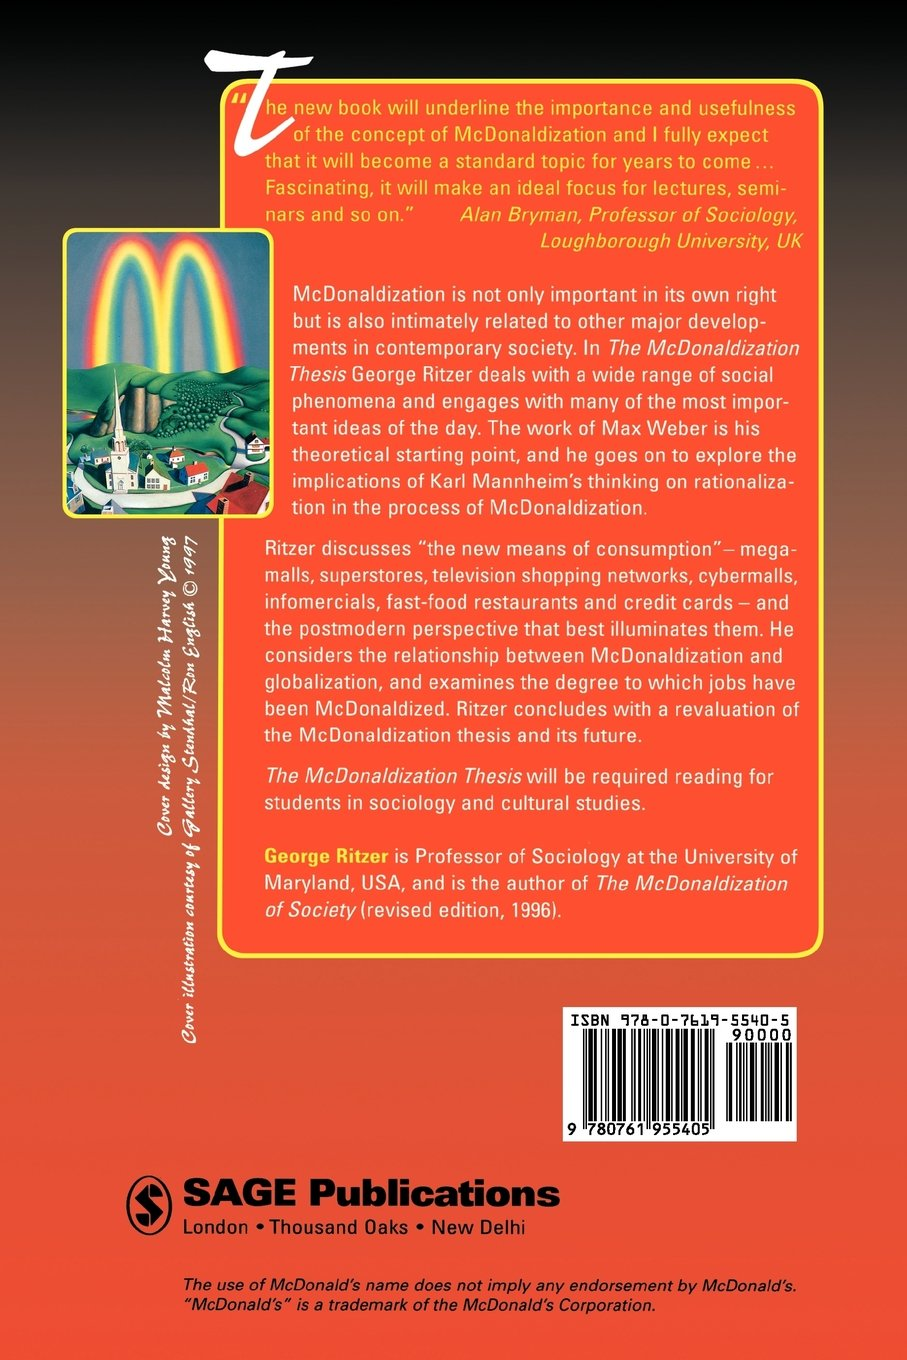 essay about mcdonaldization Unlike most editing & proofreading services, we edit for everything: grammar, spelling, punctuation, idea flow, sentence structure, & more get started now.